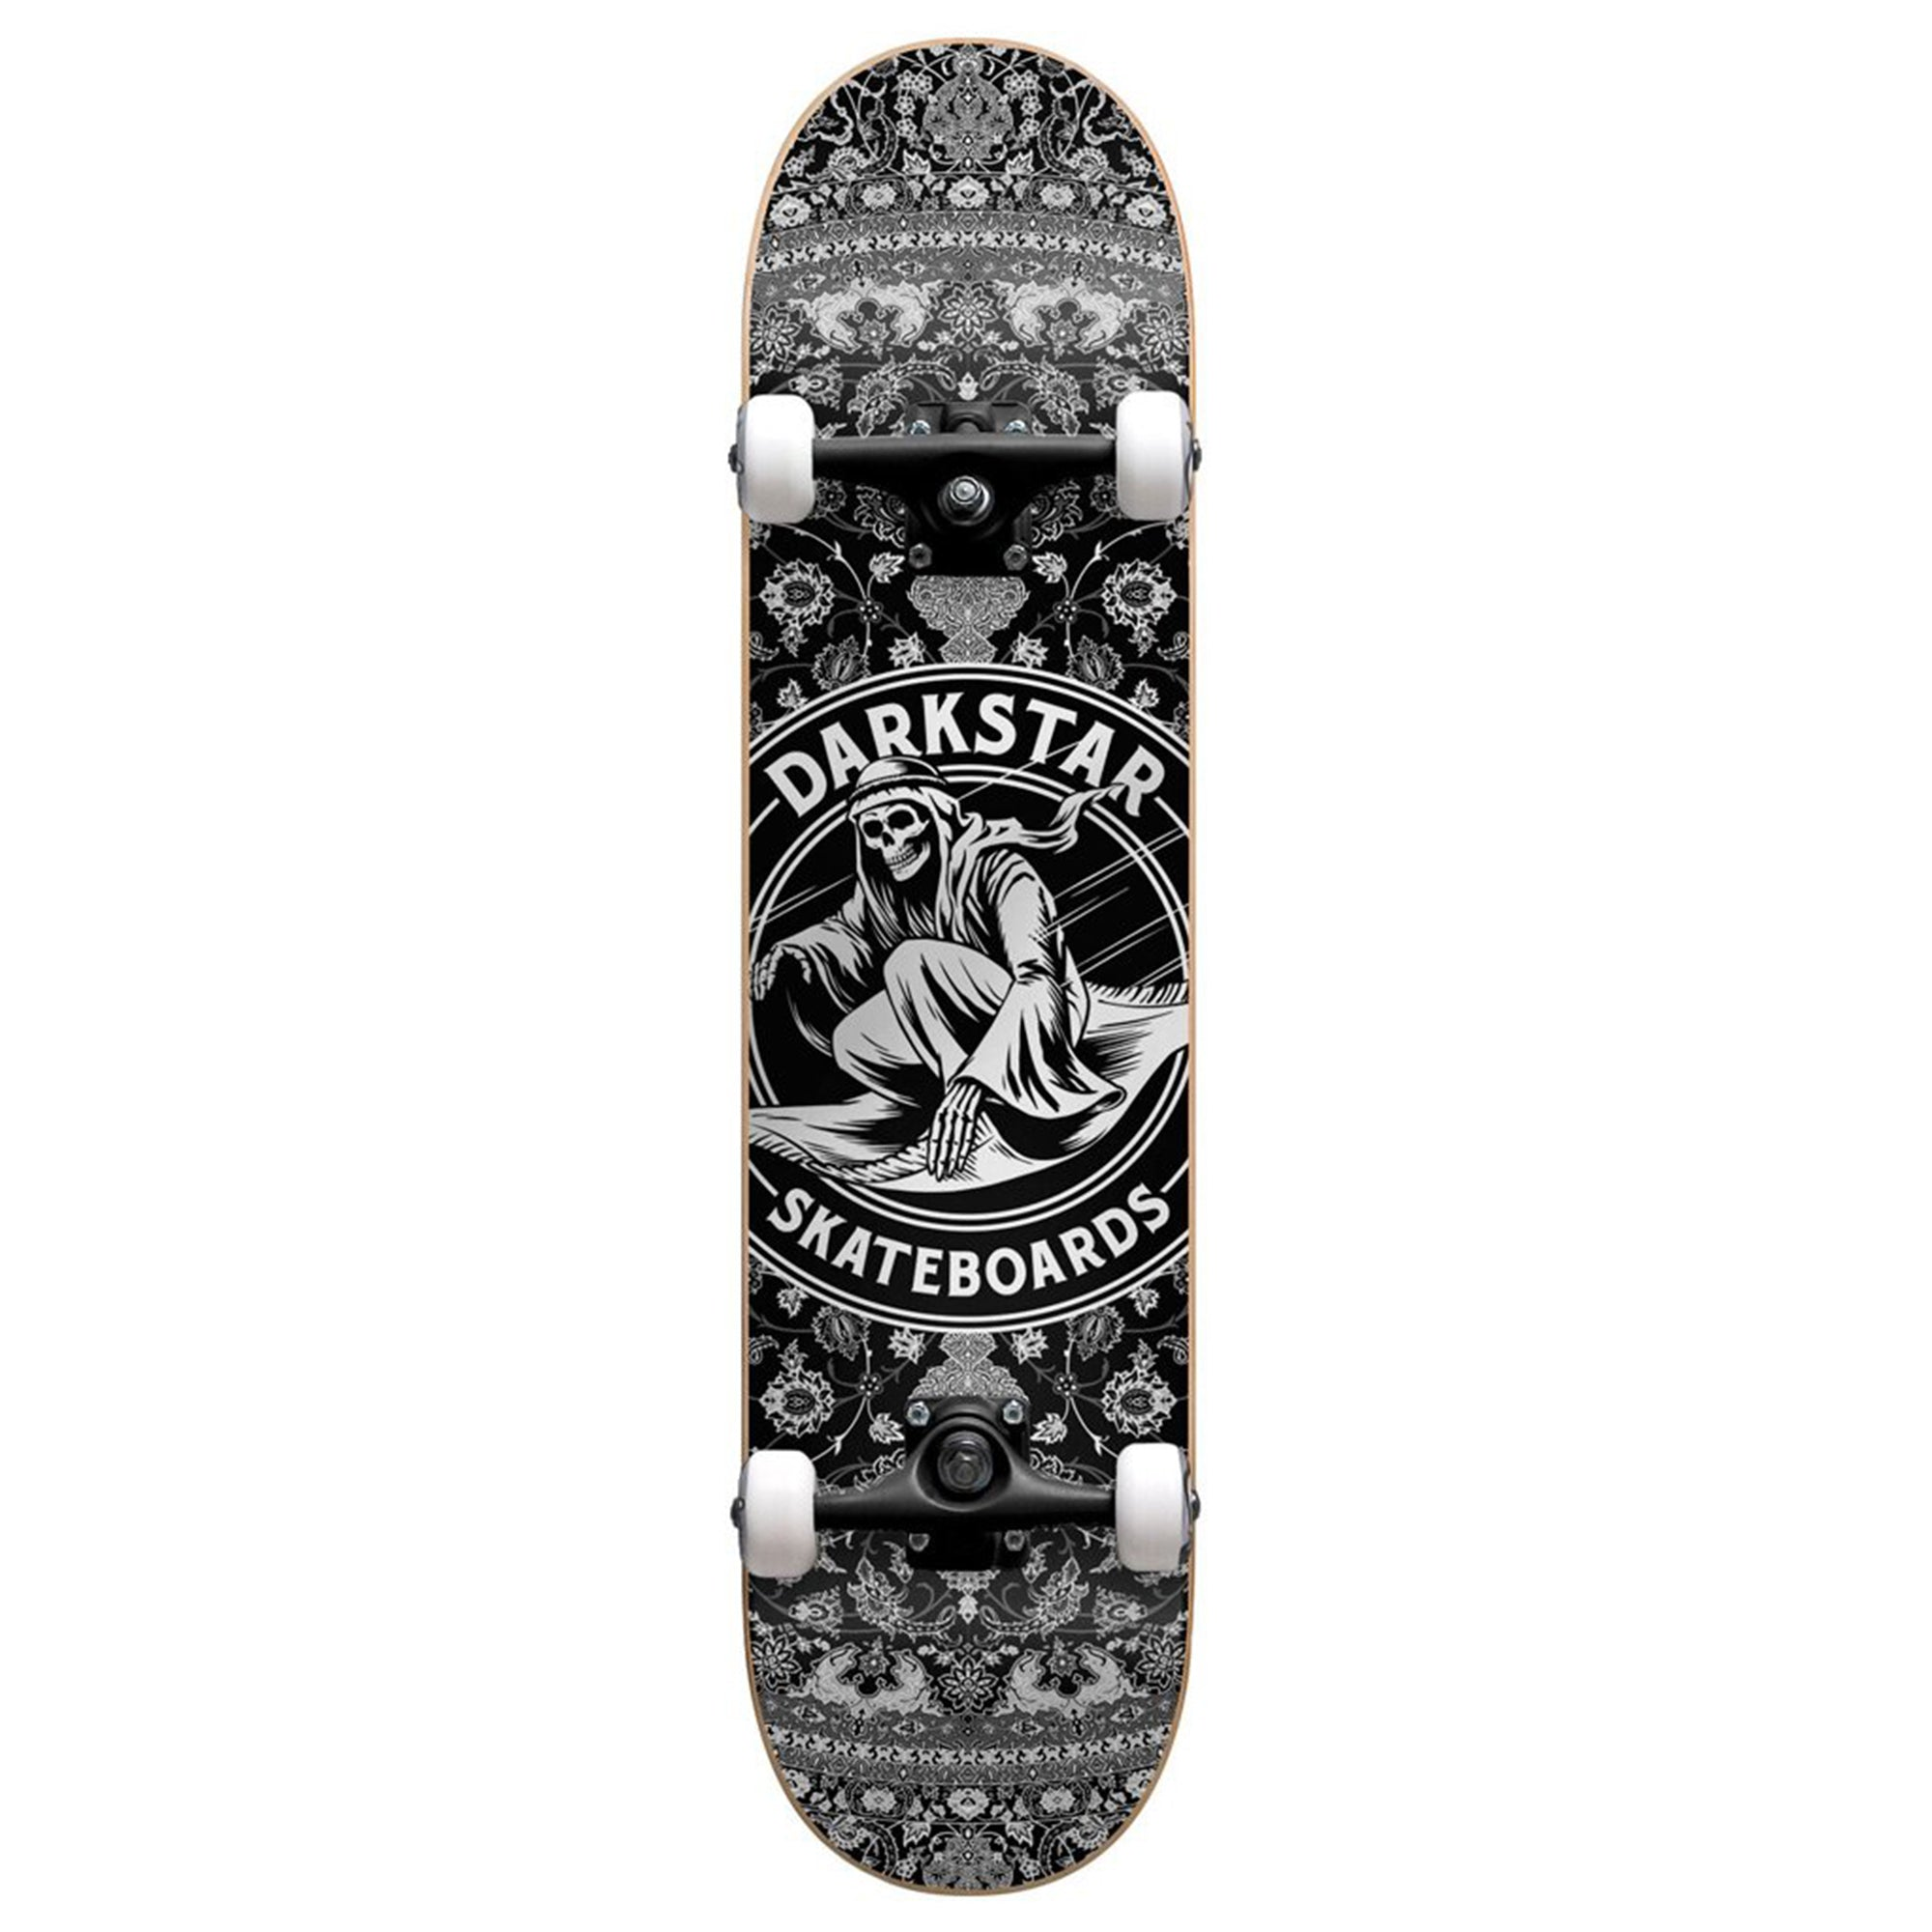 Darkstar Magic Carpet 8.0 Complete Skateboard - Gunsmoke